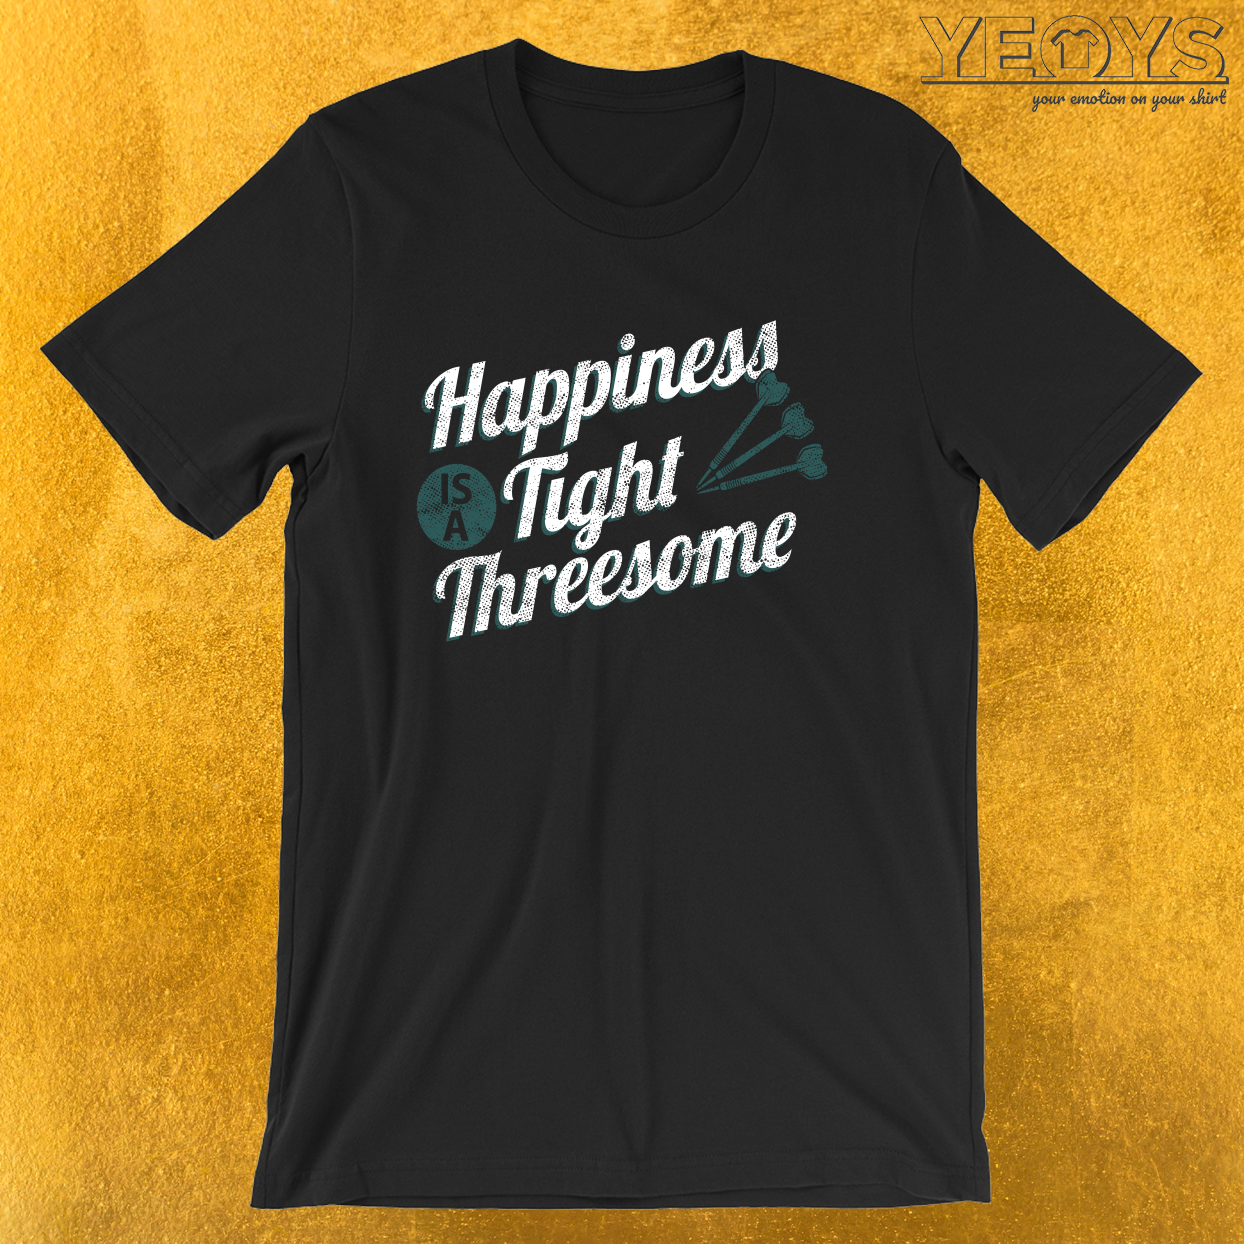 Happiness Is A Tight Threesome – Darts & Bullseye Tee